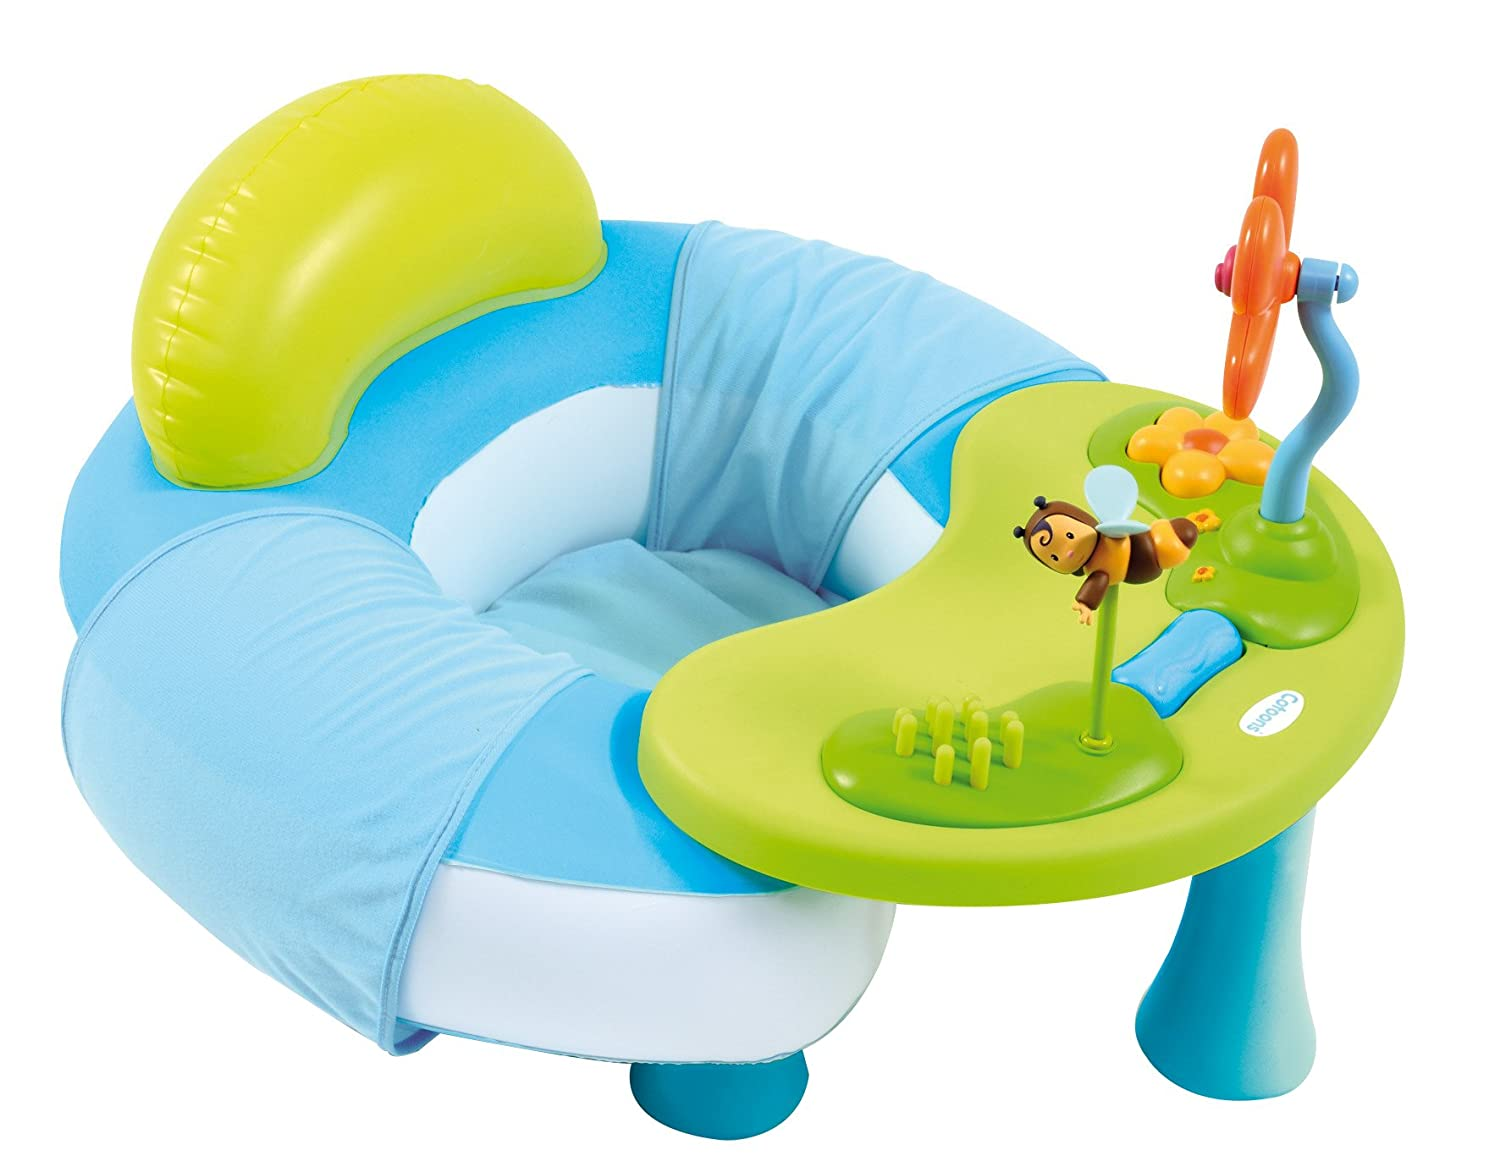 Smoby Cotoons Cosy Seat, Blue: Amazon.in: Toys & Games